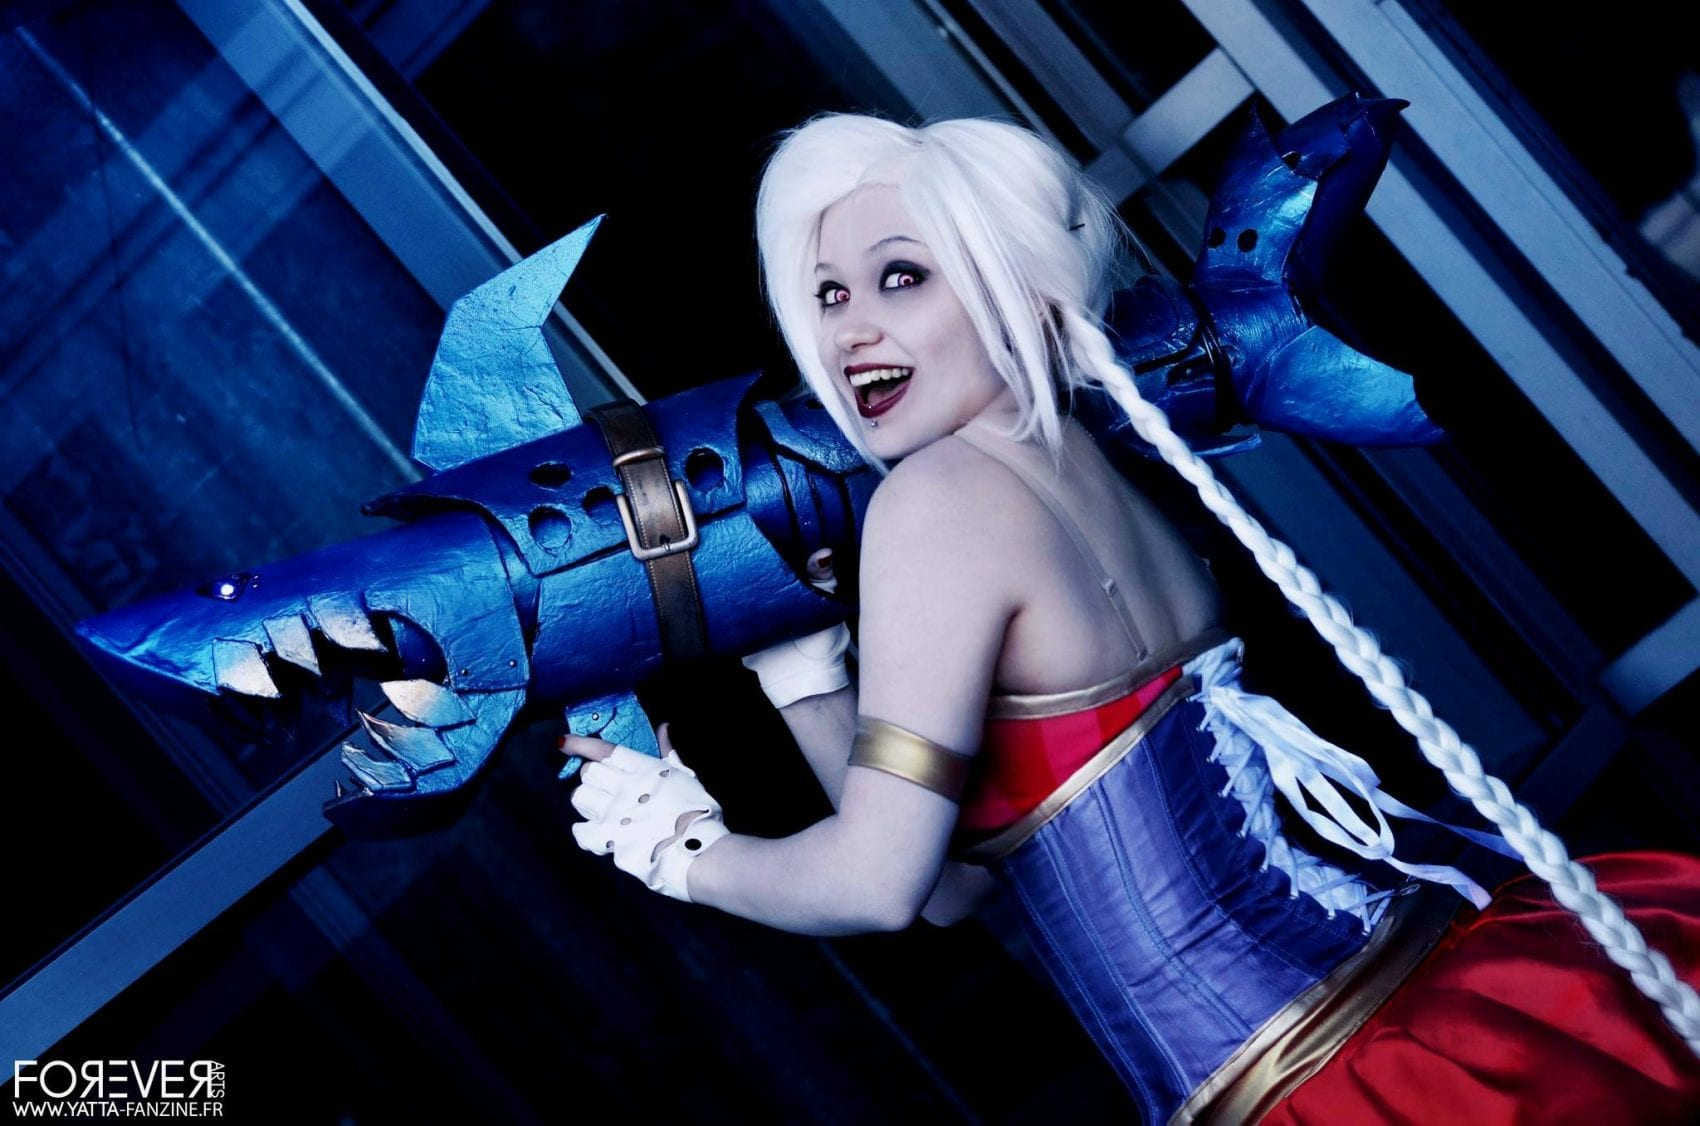 INTERVIEW – Emryis Cosplay